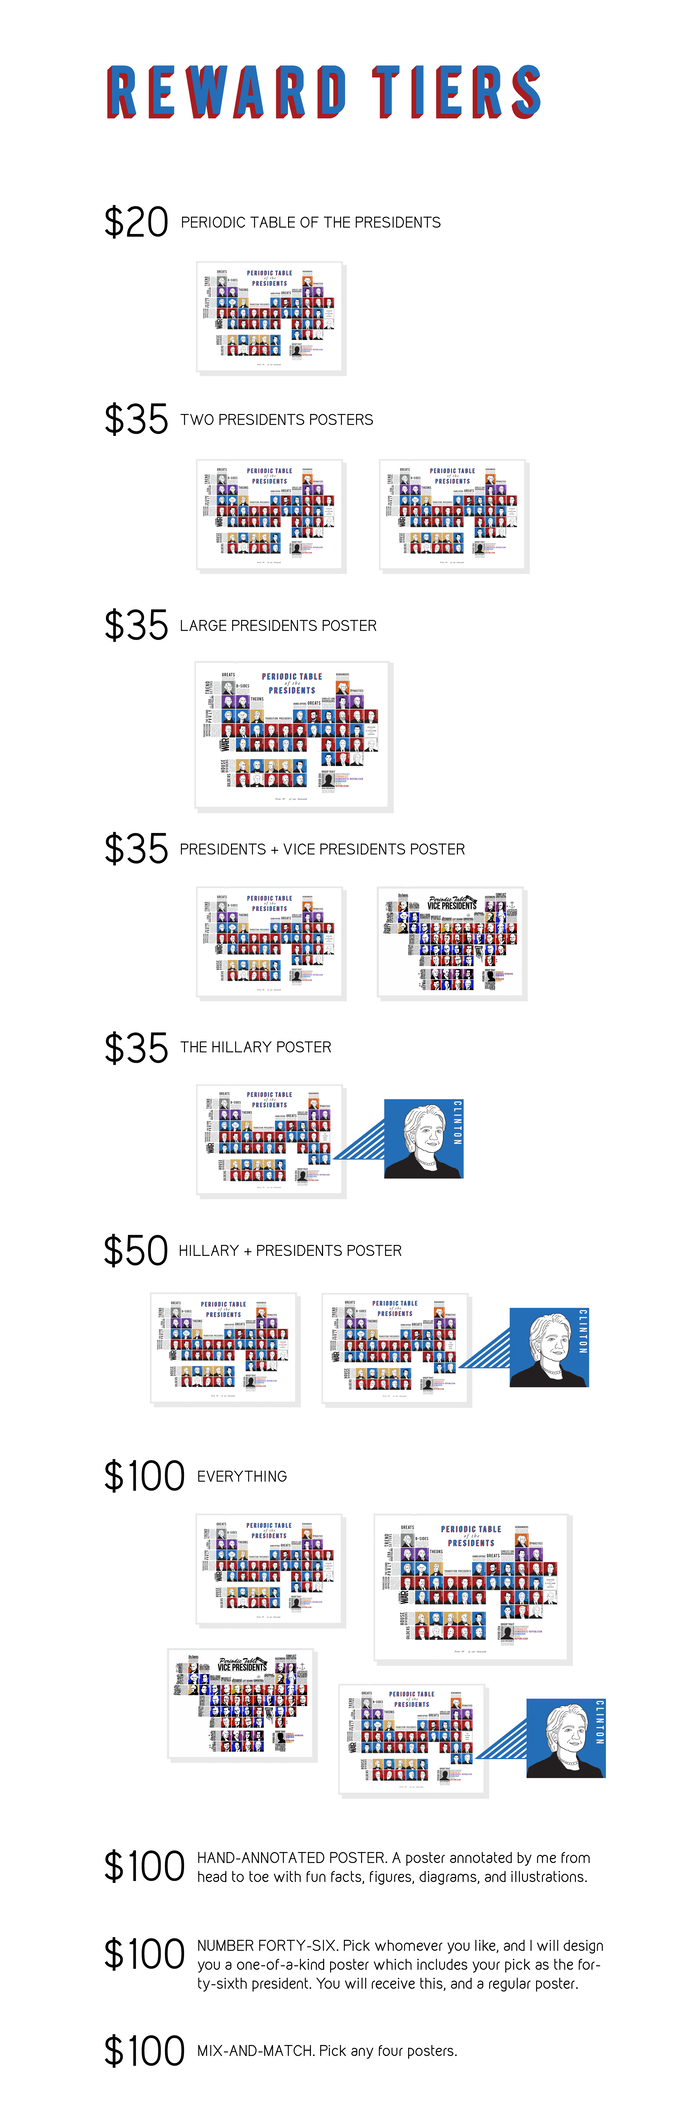 The periodic table of the presidents poster by griffin gonzales you can pledge in two ways i have created some tiers to select from or if youd like to mix and match you may add onto your pledge by using the chart gamestrikefo Image collections